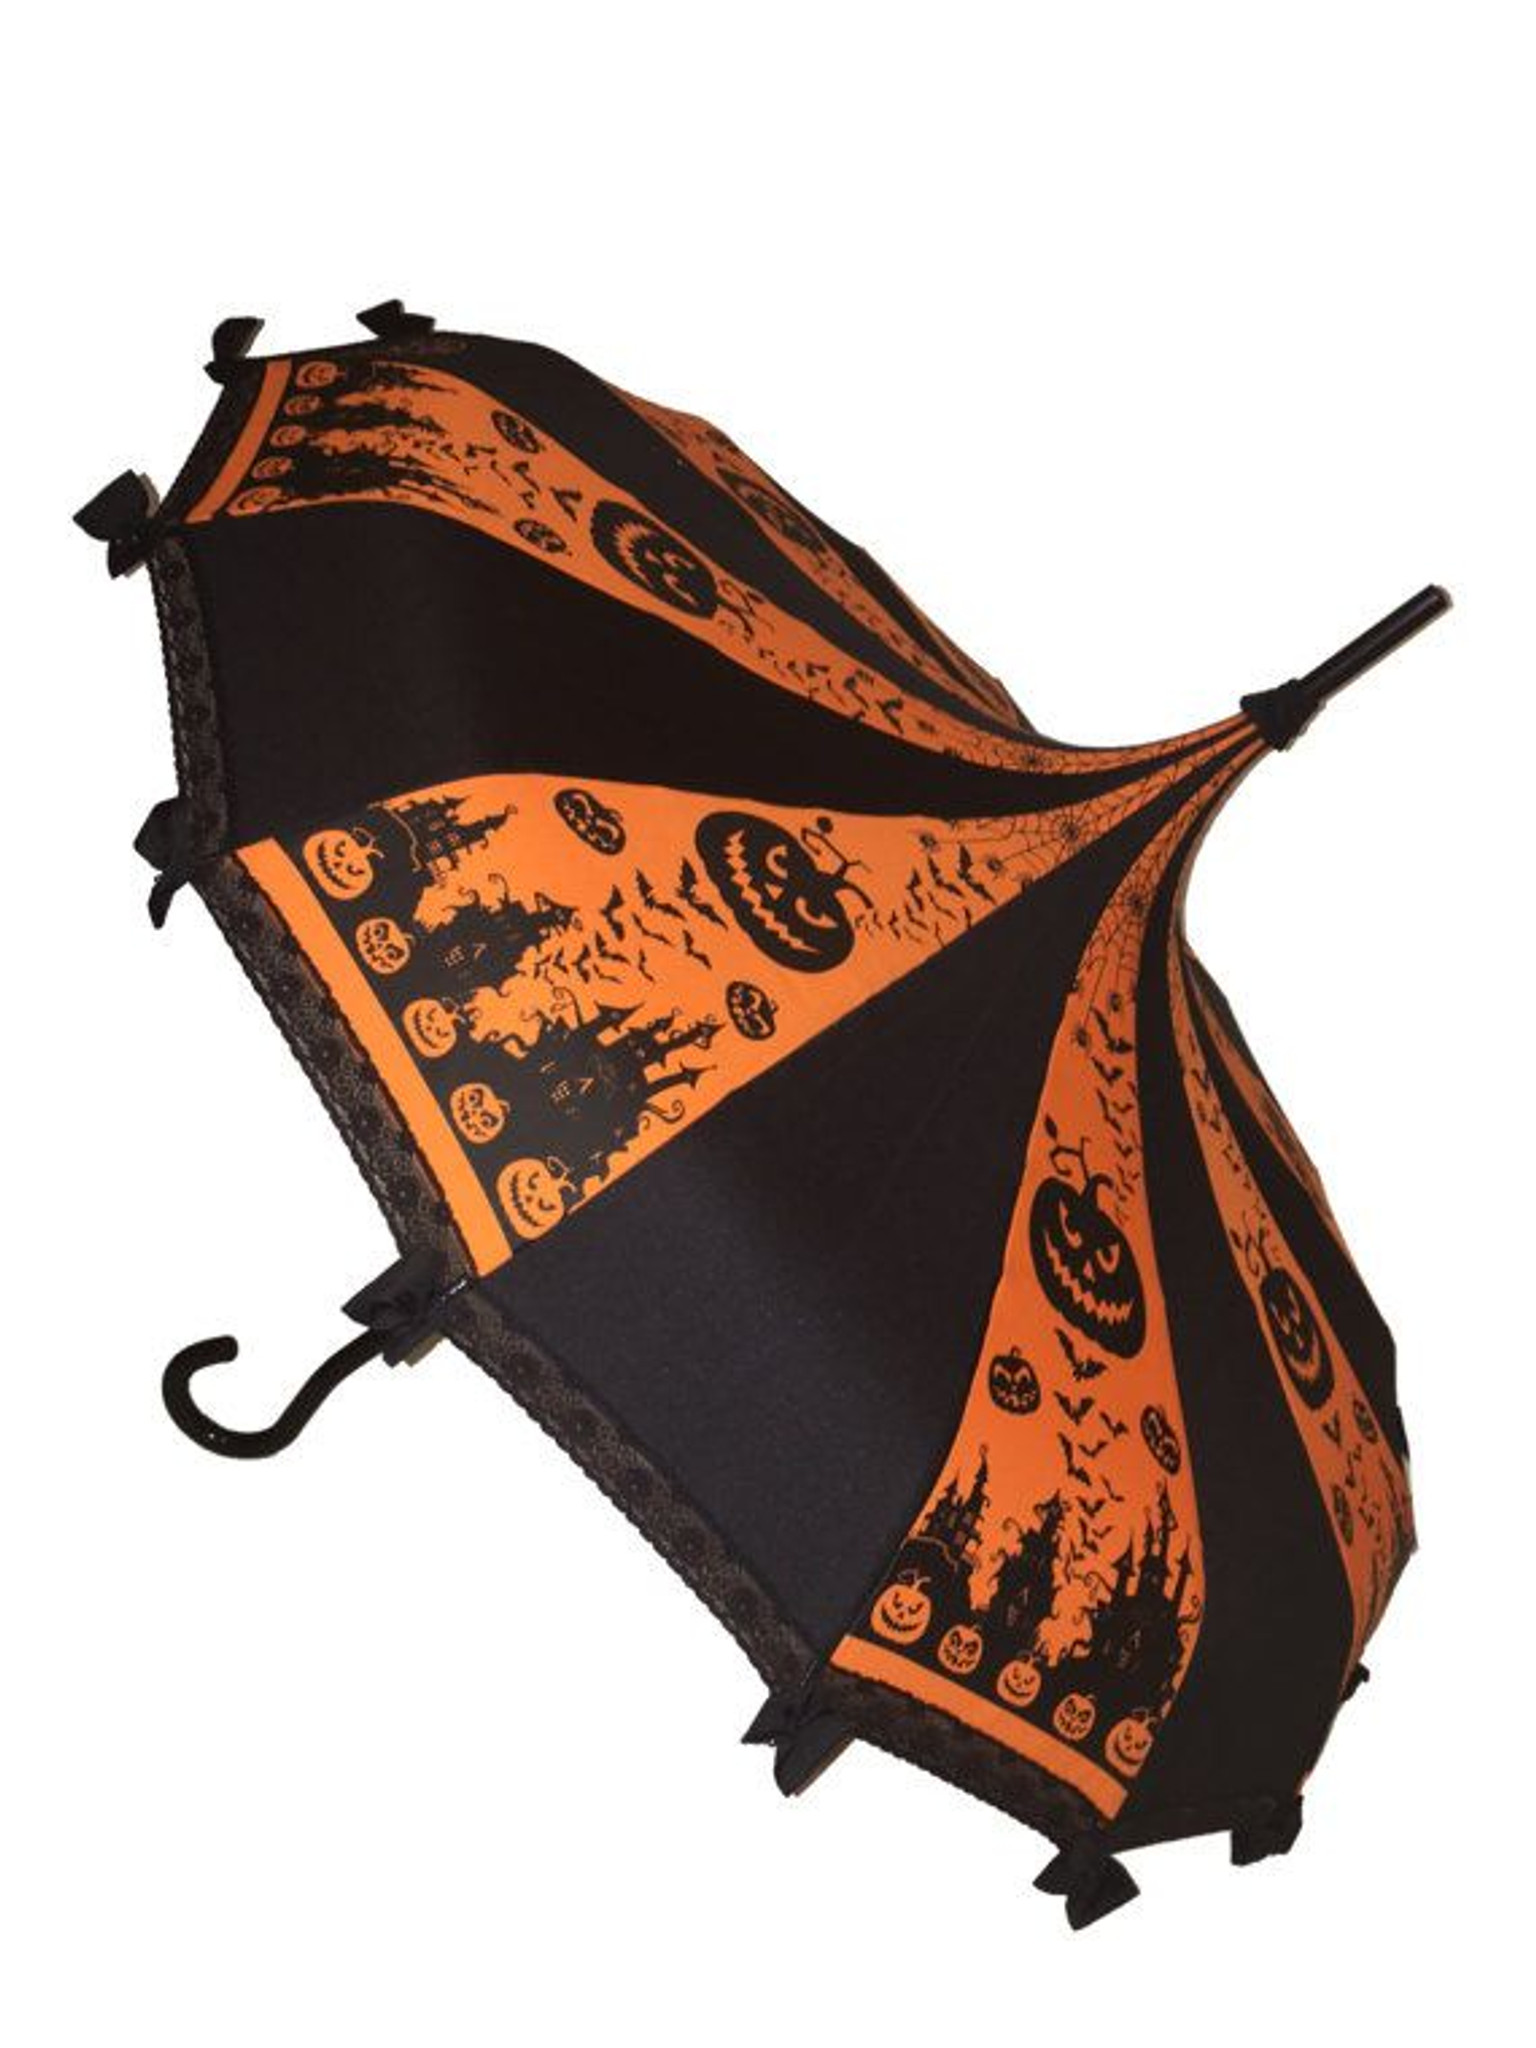 This is a beautiful Halloween inspired Pagoda style Umbrella. It has lace and bow details with a hook-style handle. Whether it is Sunny or Wet, this is a must-have accessory for all your weather needs (yes, that's right- this is a real umbrella and can get wet. It's not just a fashion piece, it's functional)! This Umbrella will complement your outfit or costume.  Pagoda Style Umbrella Halloween inspired patterned panels Hook-styled handle Lace ans small black bows detail Sturdy Construction Use as a parasol or rainy weather umbrella  http://petuniarocks.com